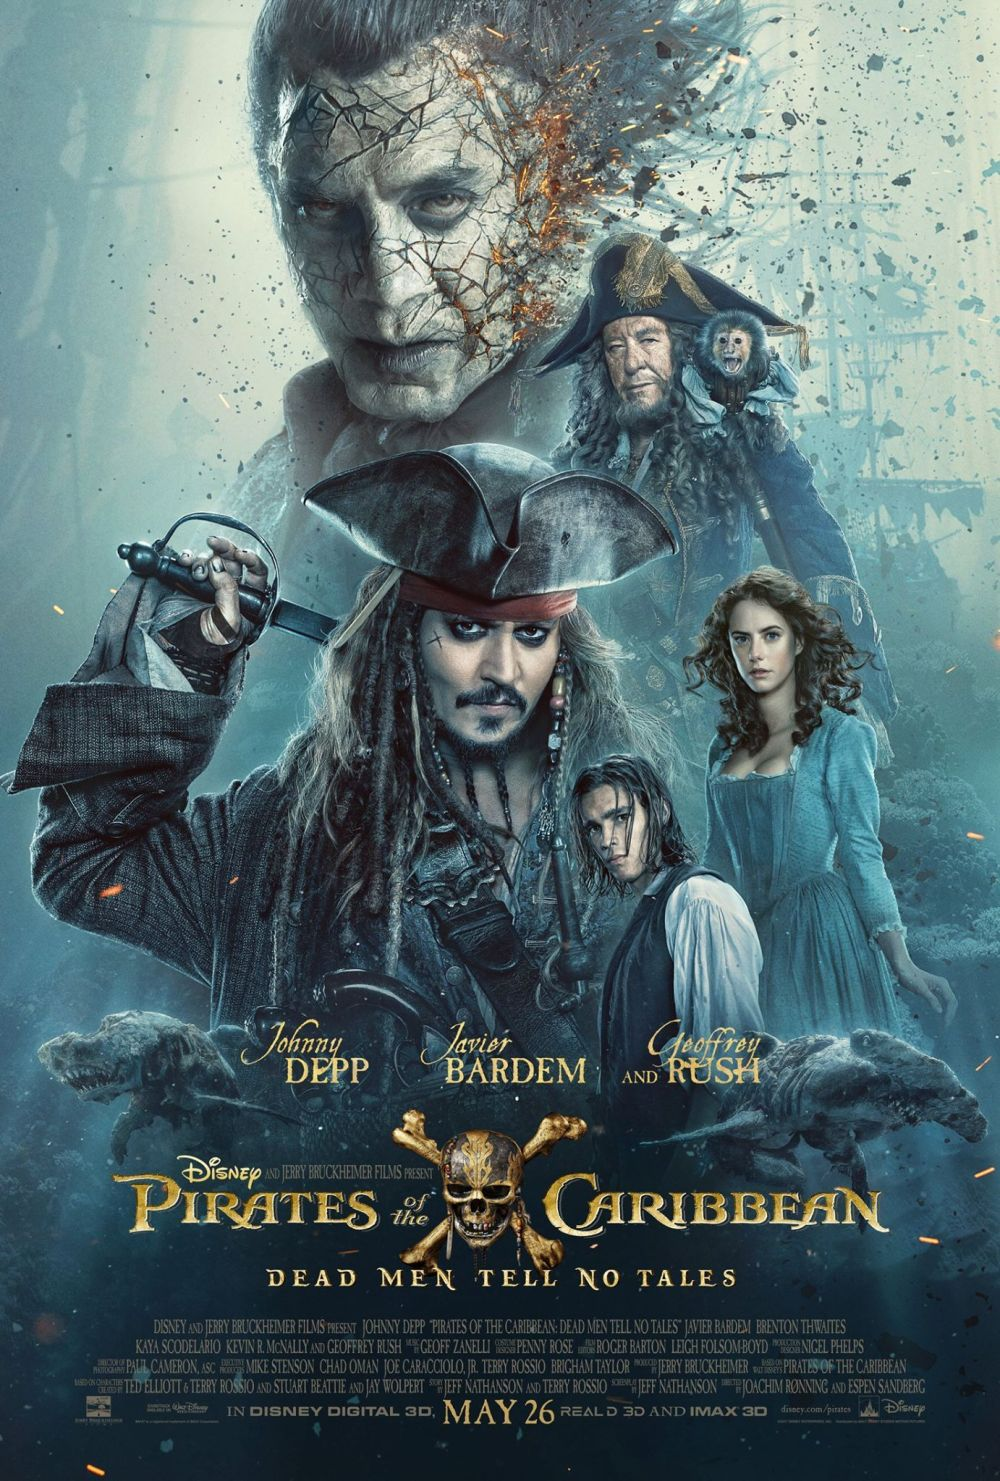 Pirates-of-the-Caribbean-5-Movie-Poster.jpg